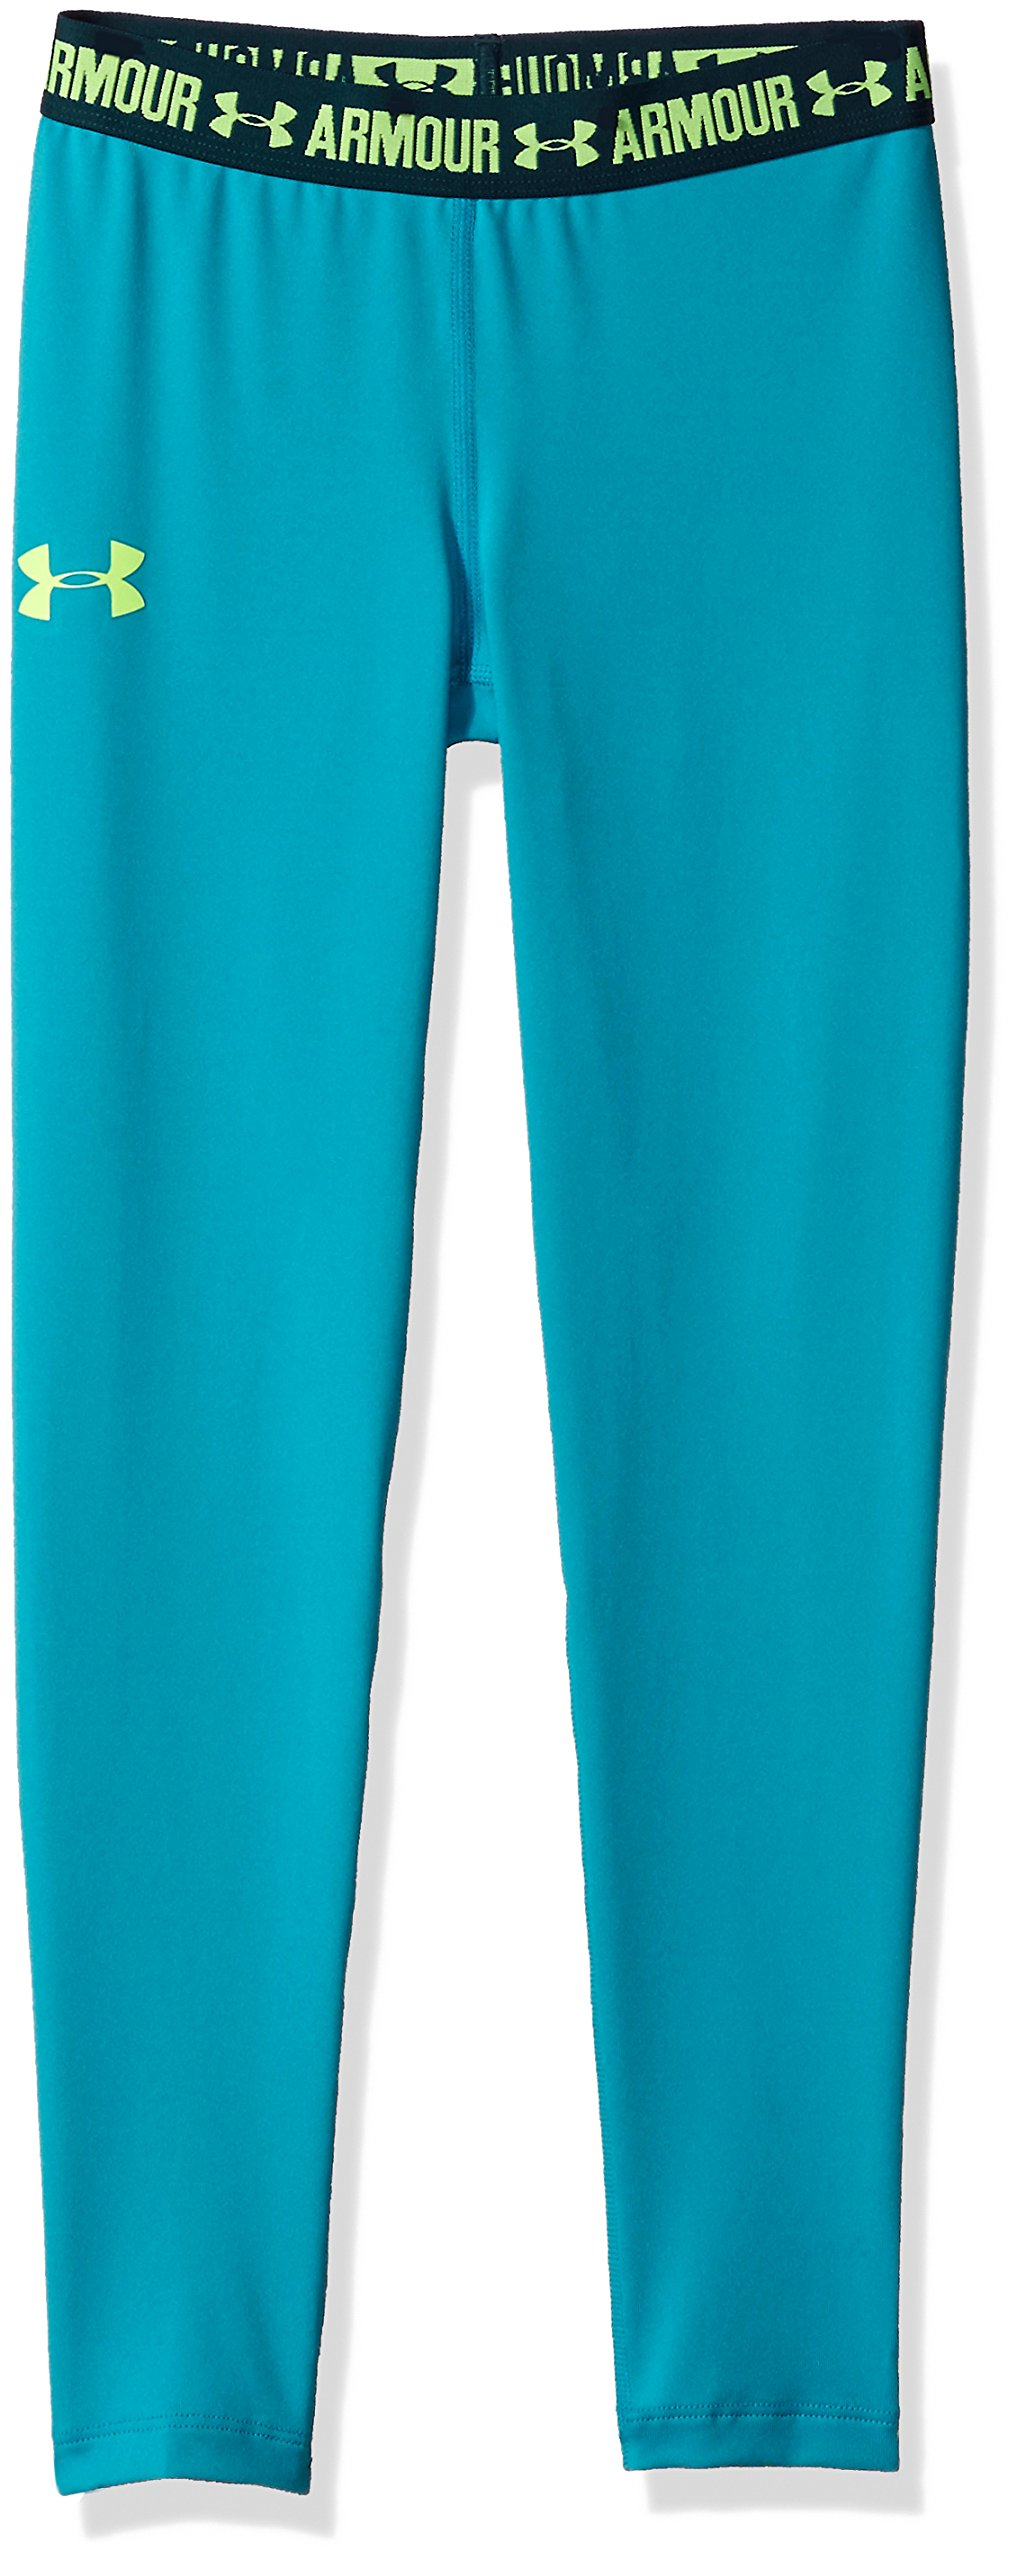 Under Armour Girls' HeatGear Armour Legging,Blue Shift /Quirky Lime, Youth X-Large by Under Armour